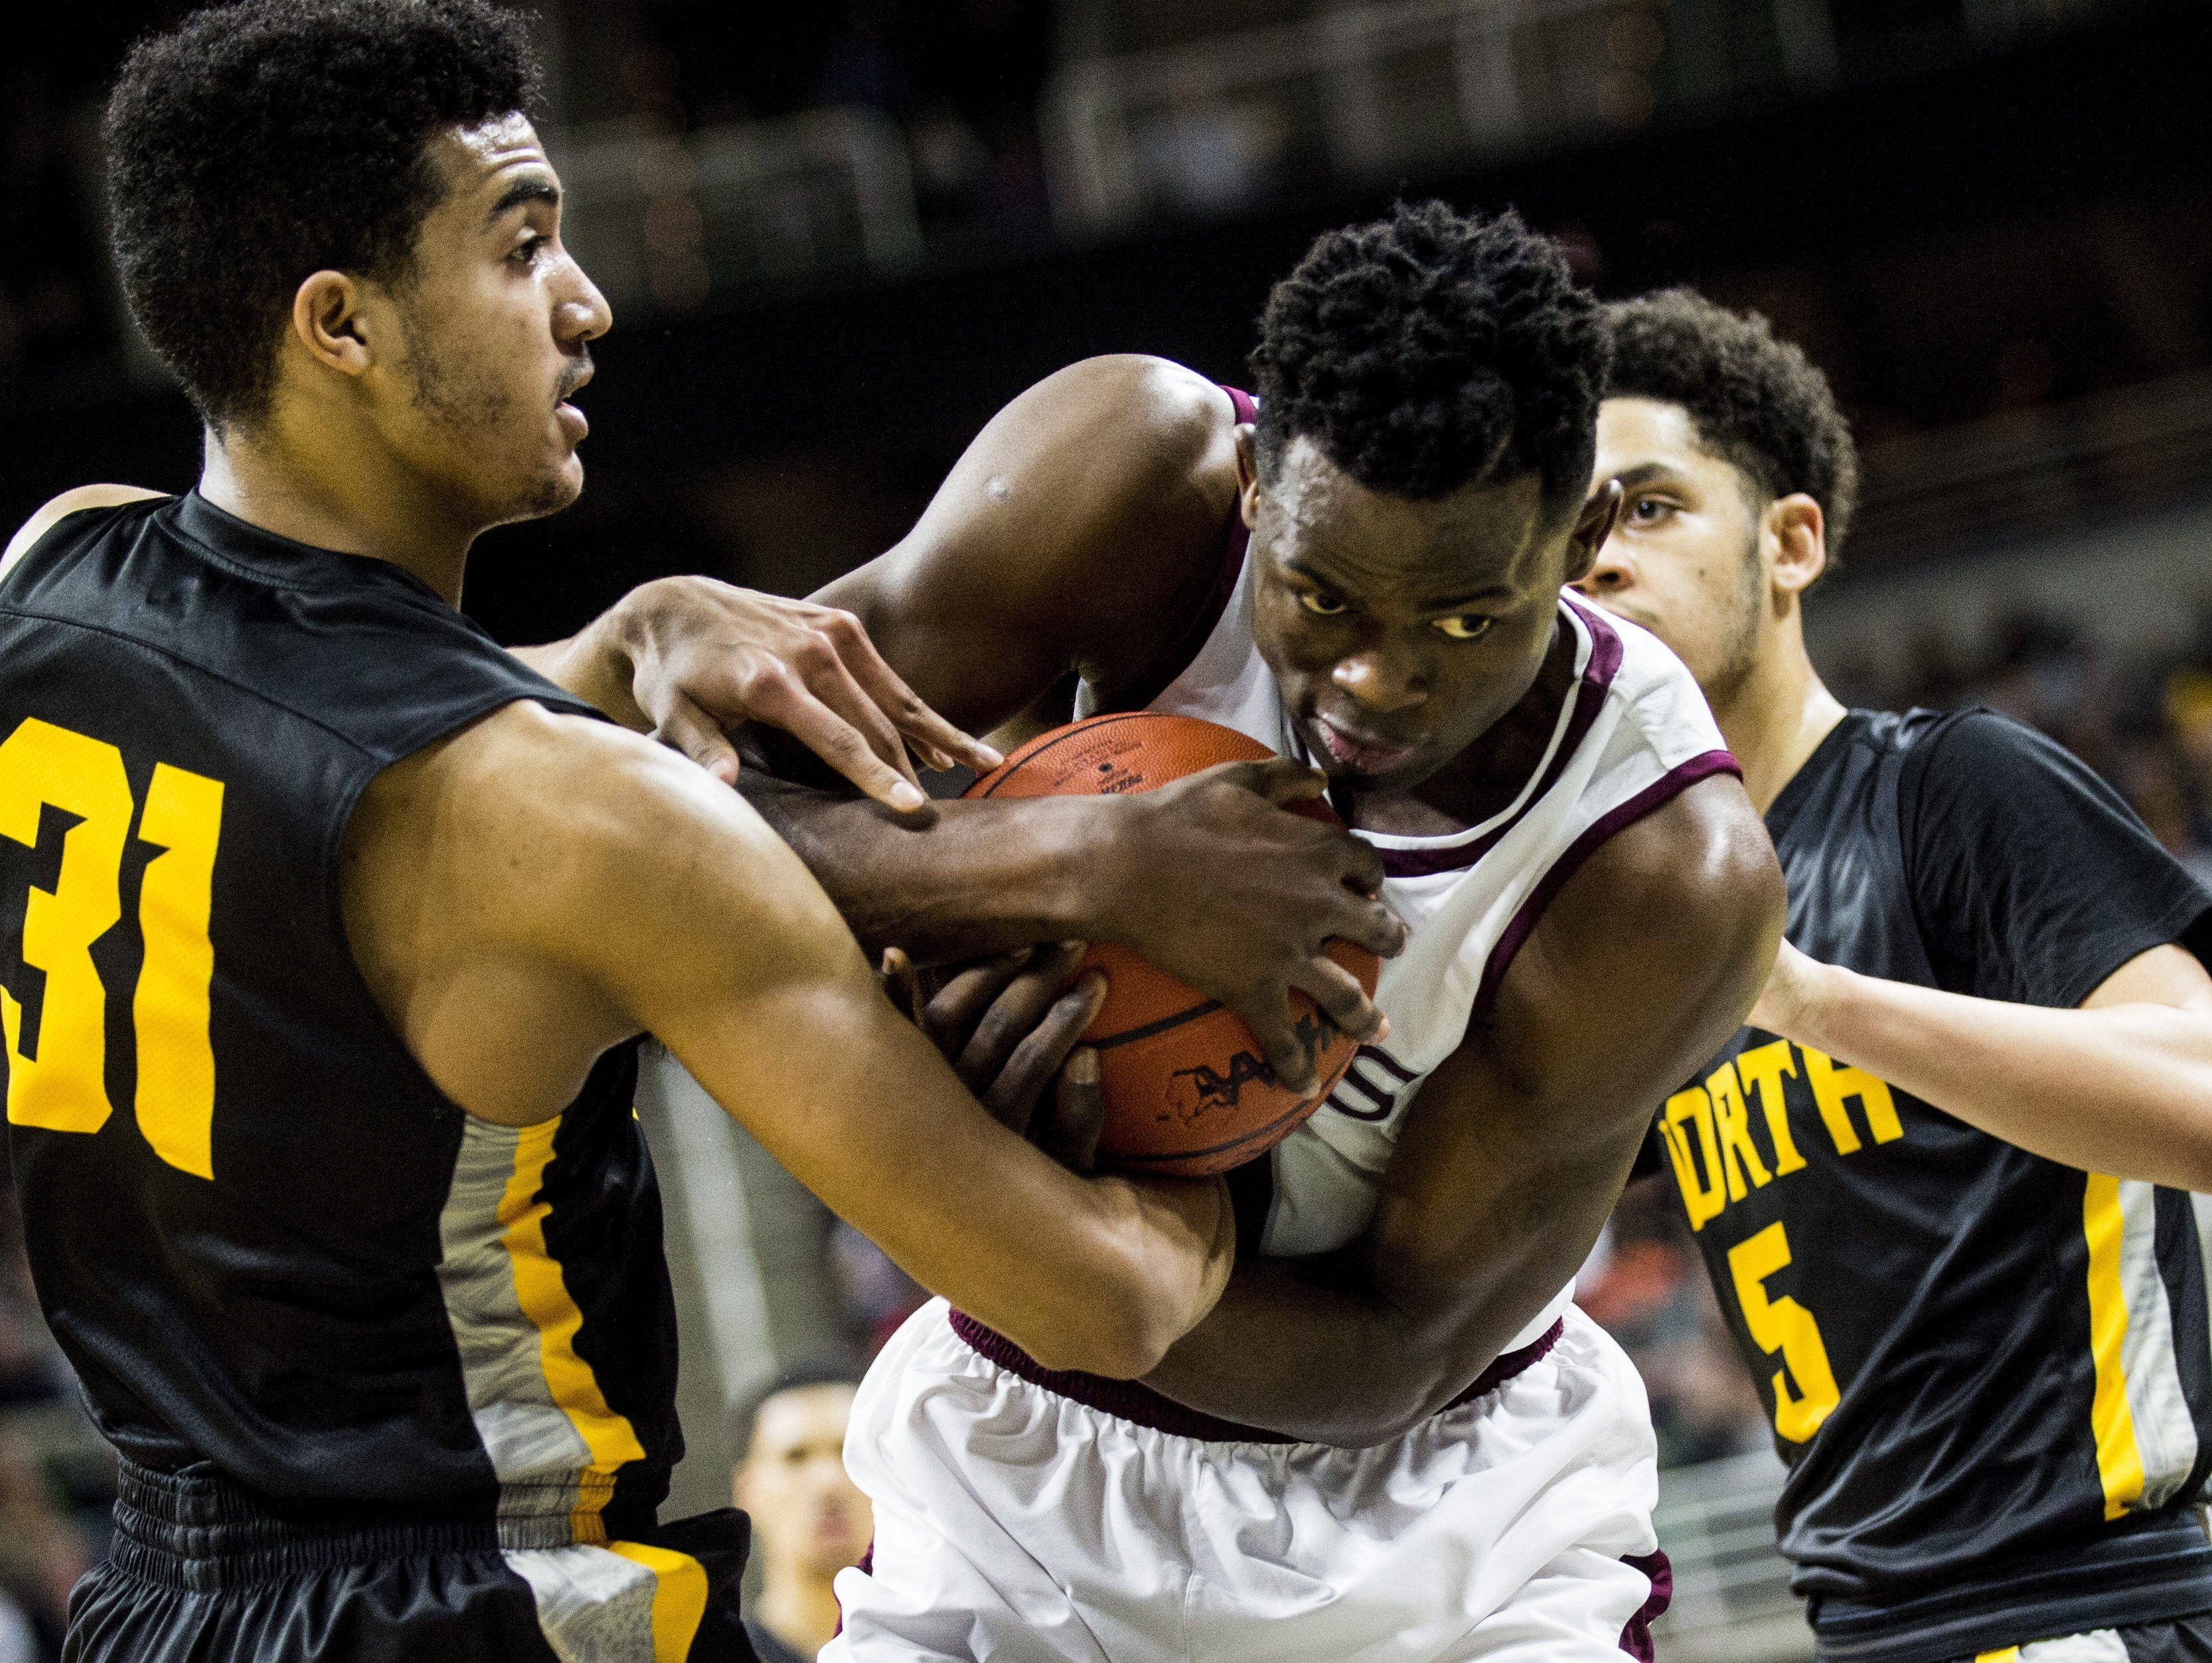 North Farmington defenders battle for a rebound with U-D Jesuit's Ikechukwu Eke, center, in a Class A boys high school basketball state championship game March 26, 2016, in East Lansing.